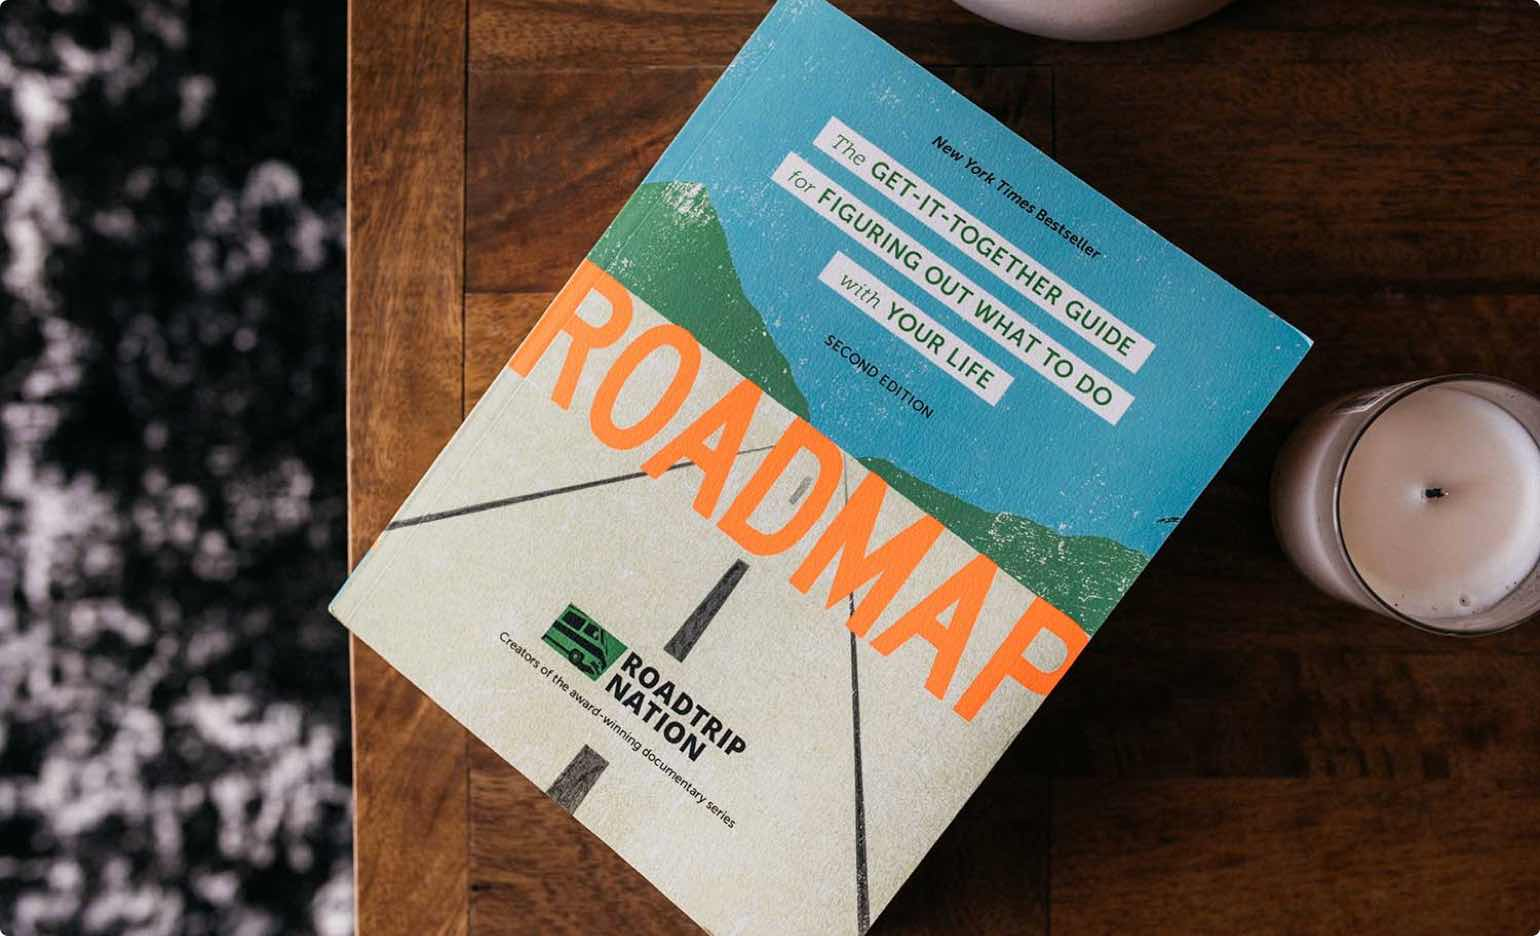 Roadmap book on a table with candles